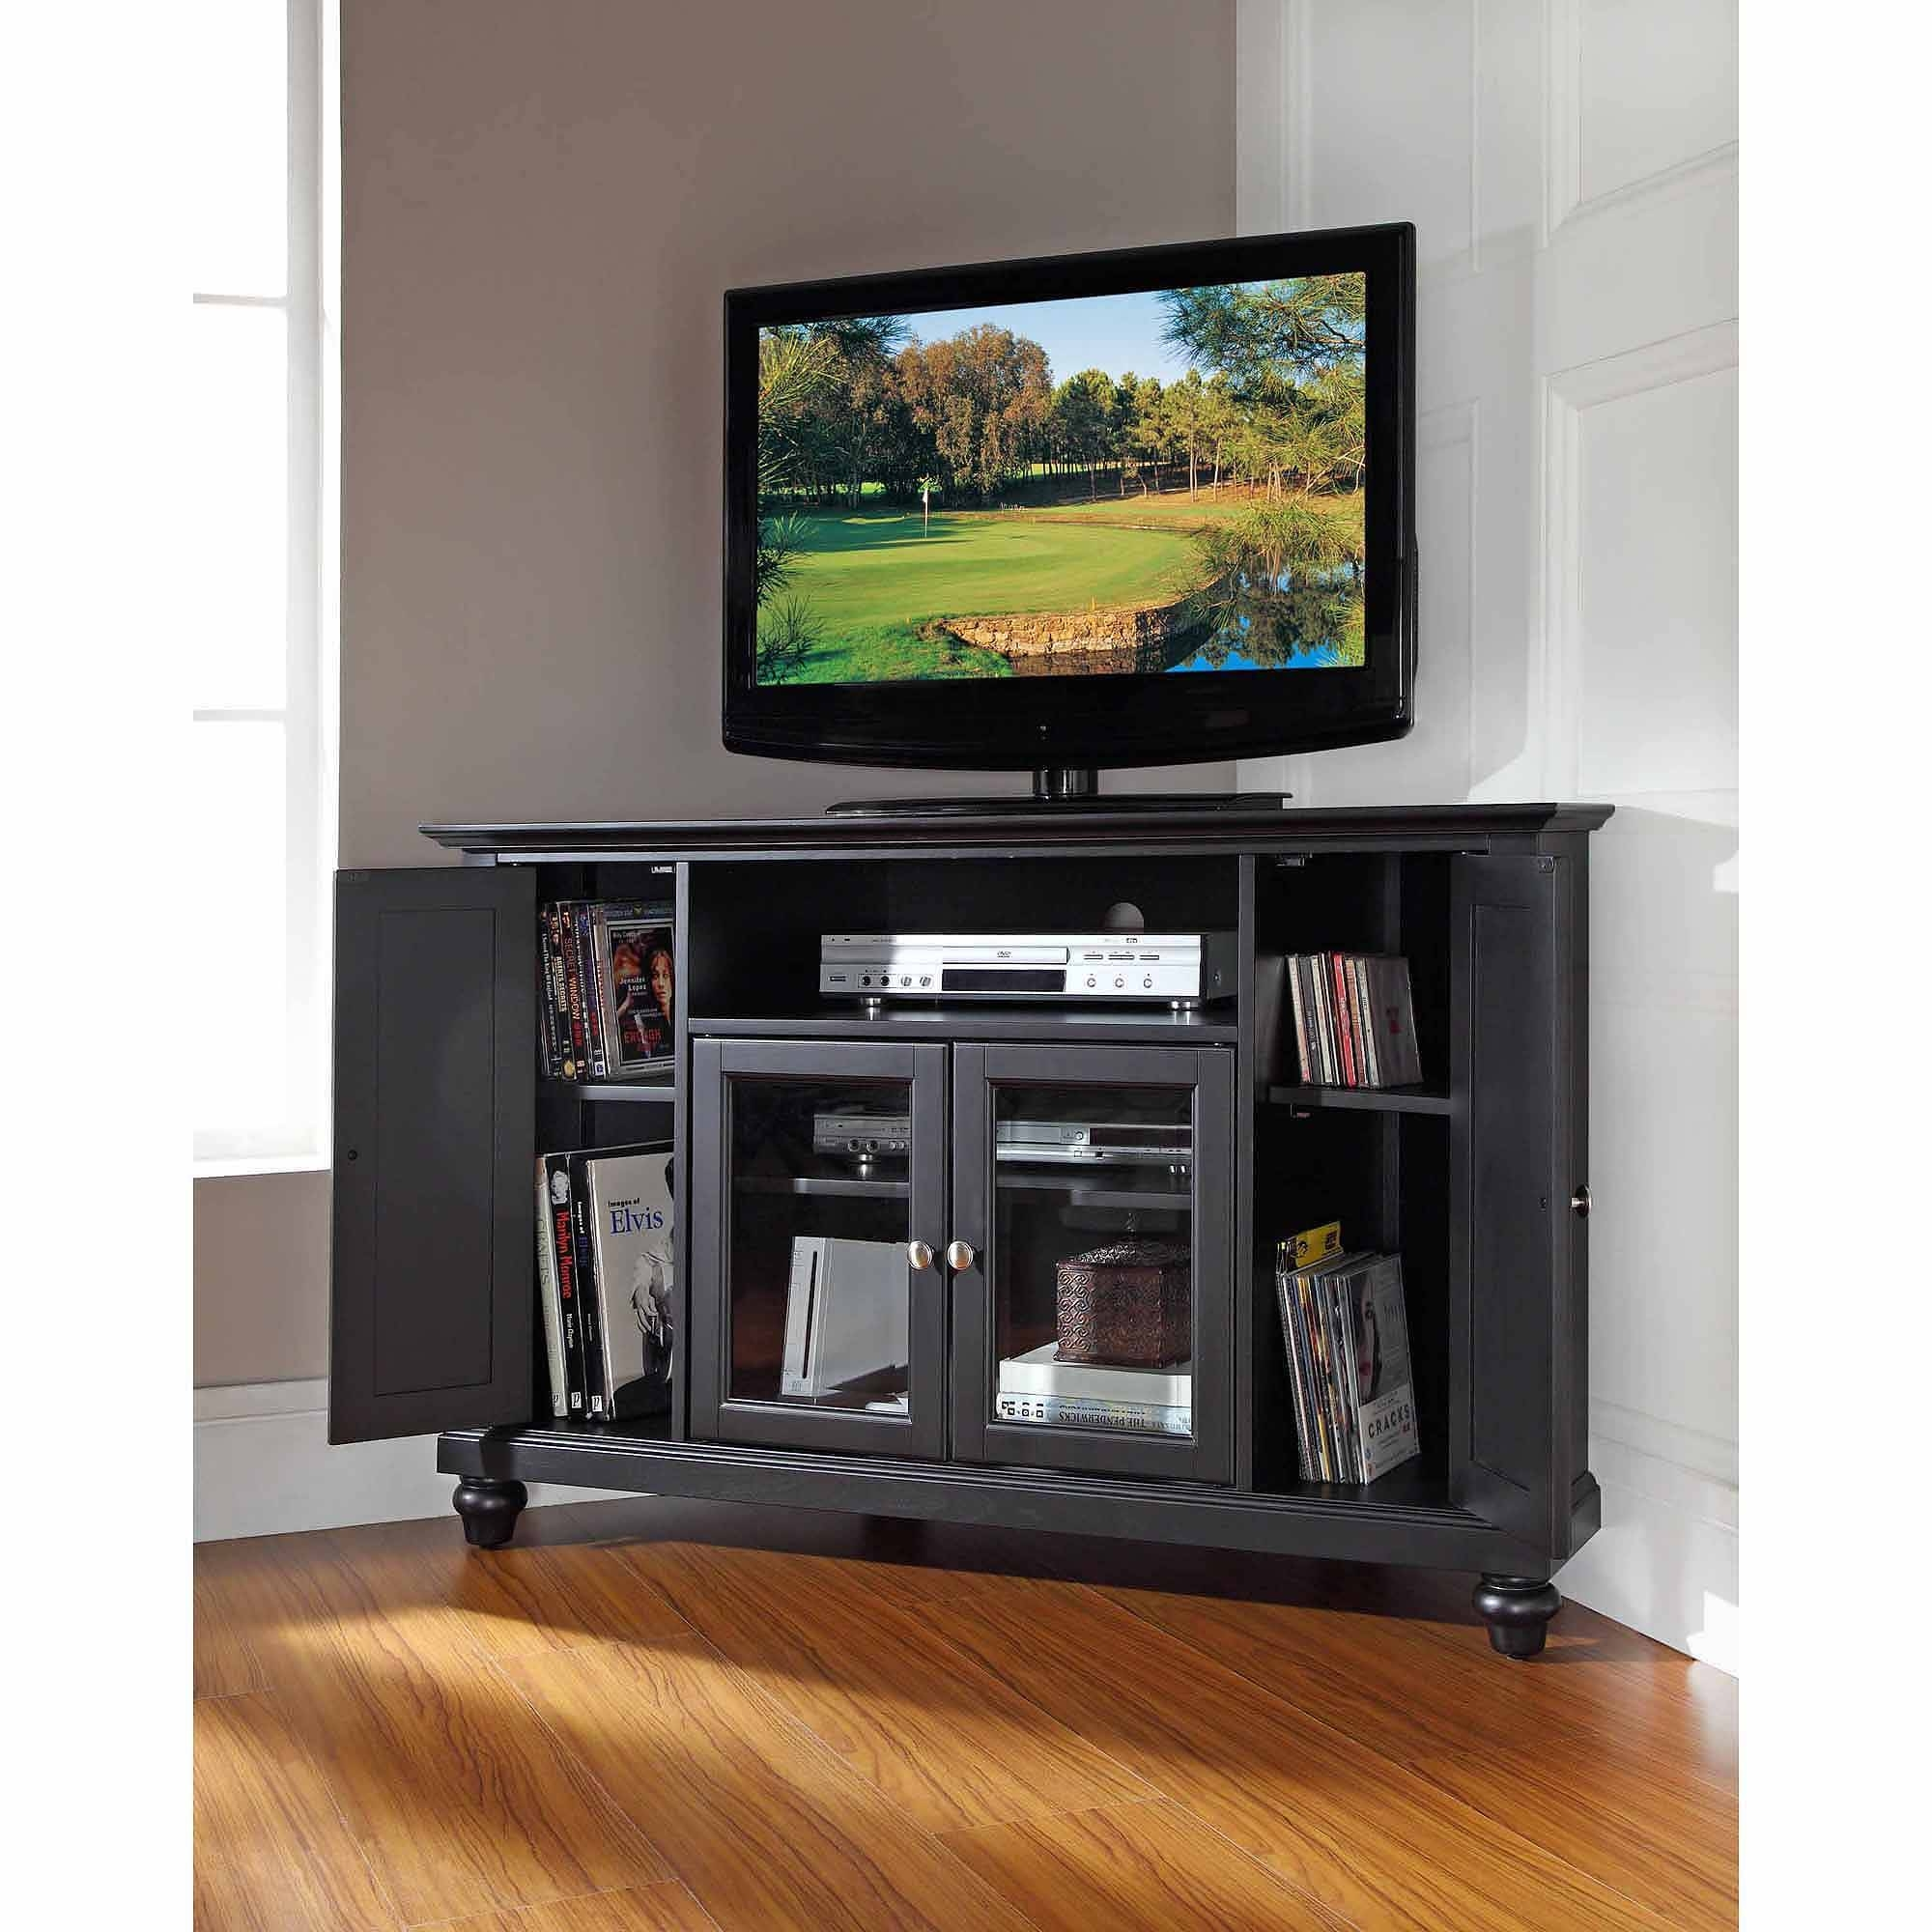 Crosley Furniture Cambridge Corner Tv Stand For Tvs Up To 48 With Regard To Corner Tv Tables Stands (View 3 of 15)